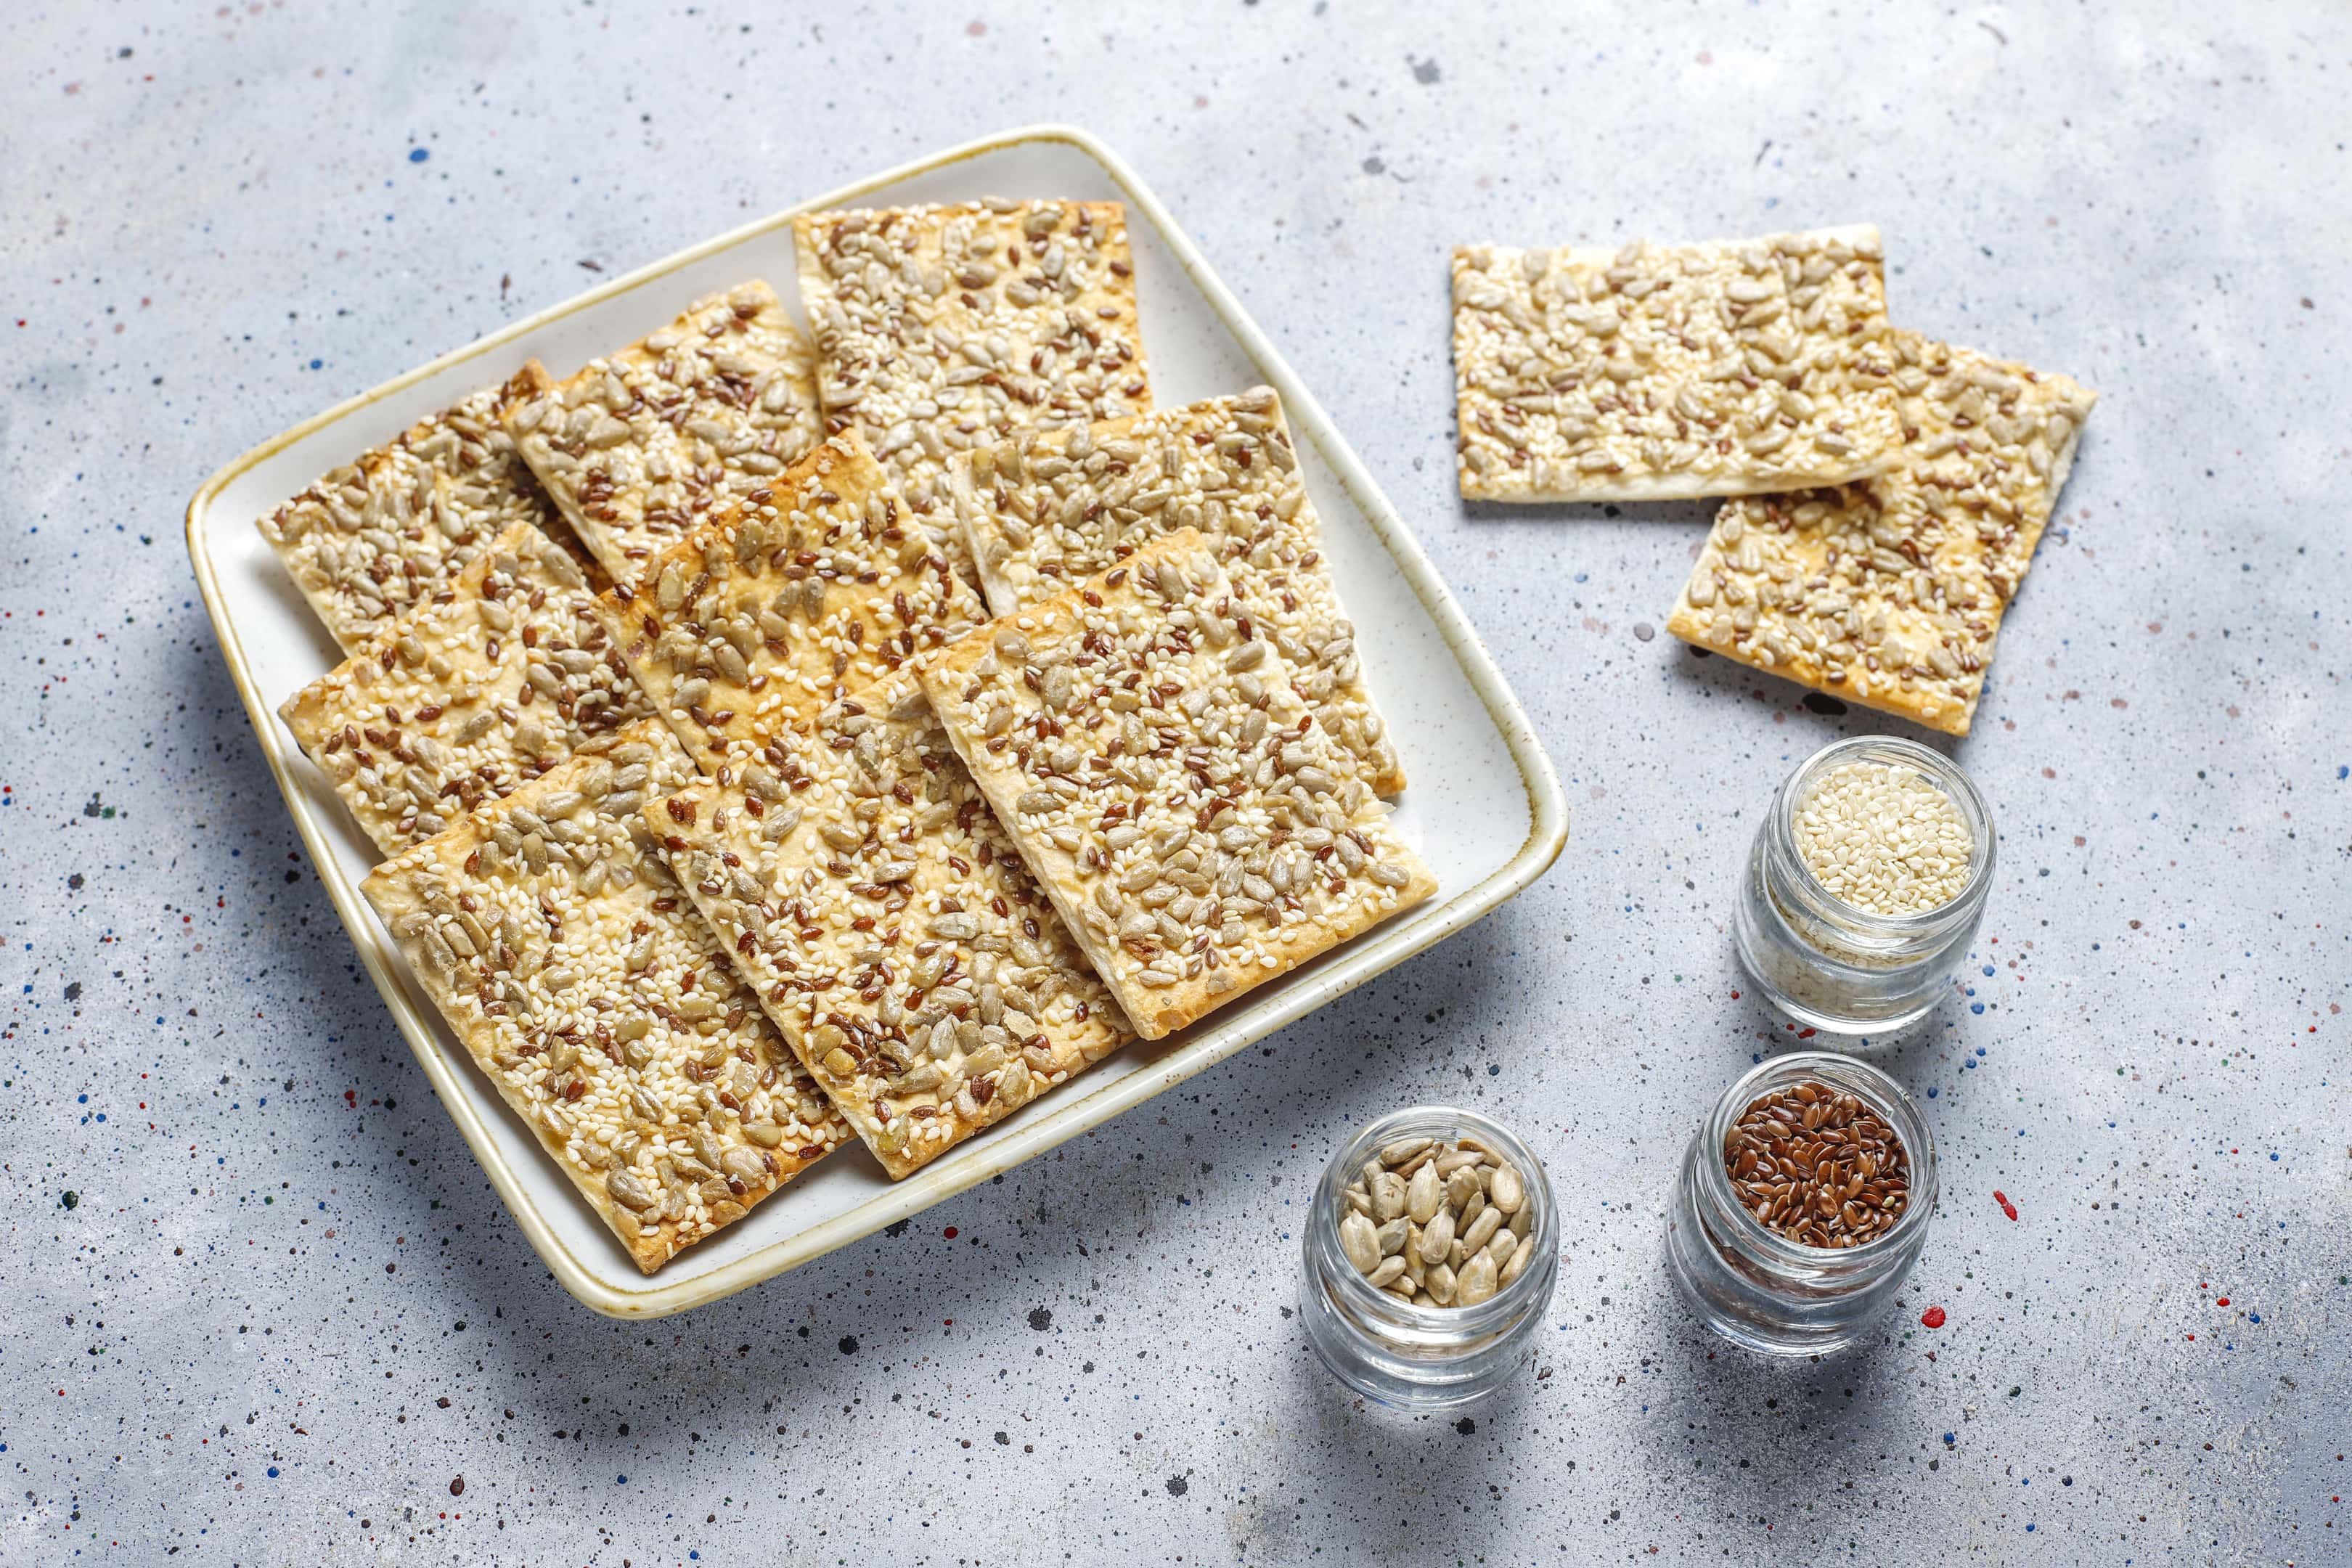 Crackers with flax, sesame and sunflower seeds